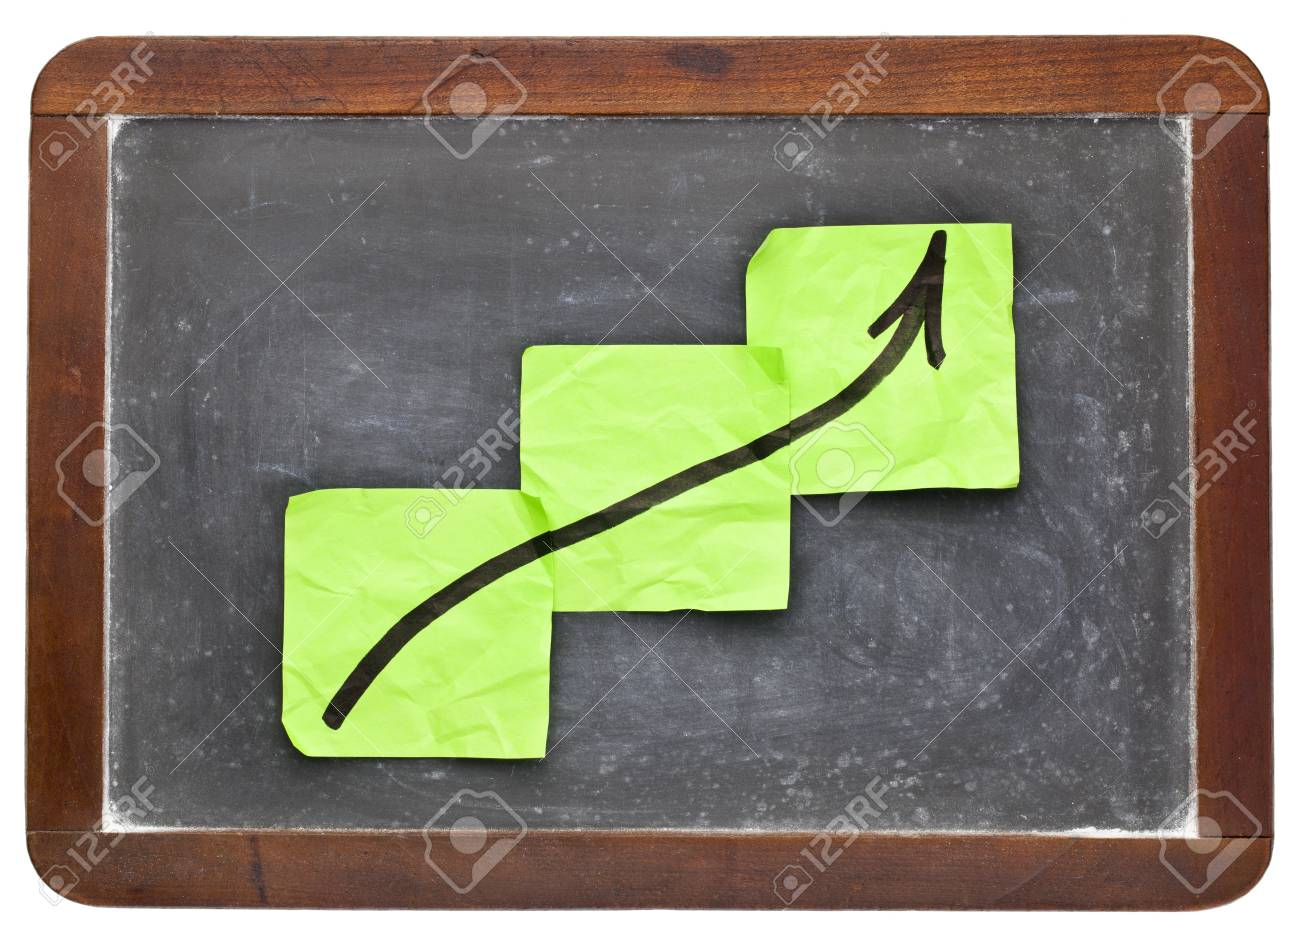 growth concept - sticky notes on vintage slate  blackboard isolated on white Stock Photo - 13222922